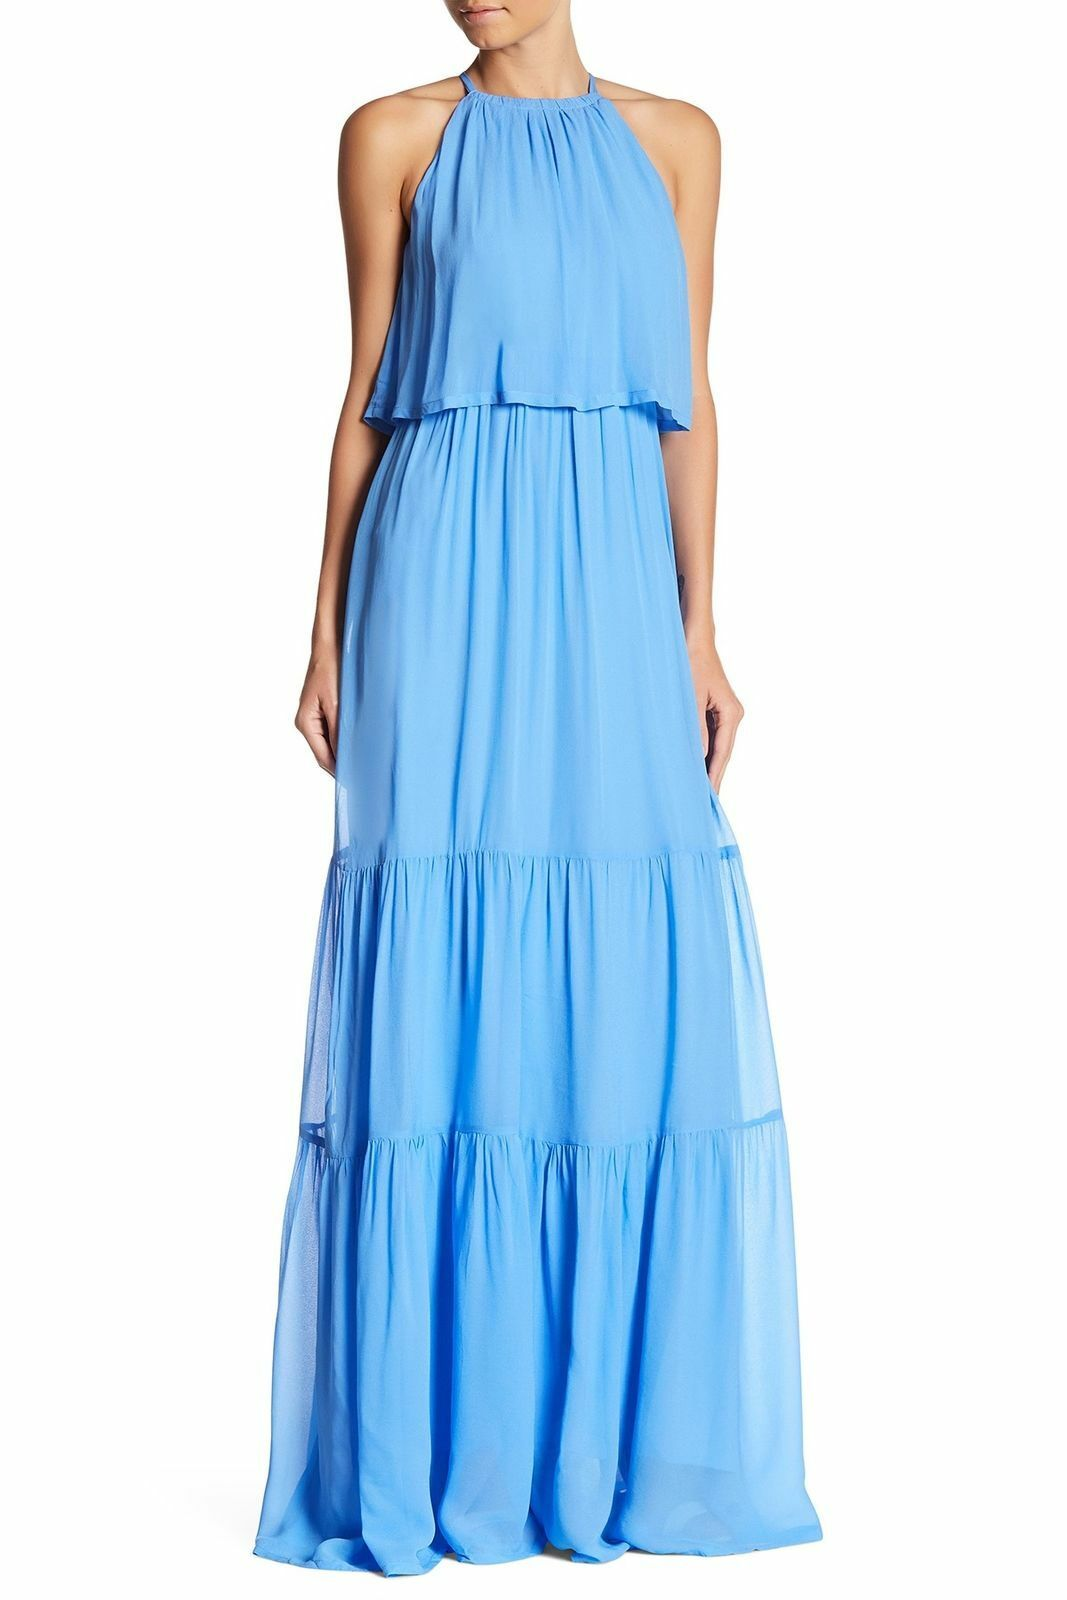 New French Connection Light Blau Crew Neck Tierot Halter Maxi Dress 2 New